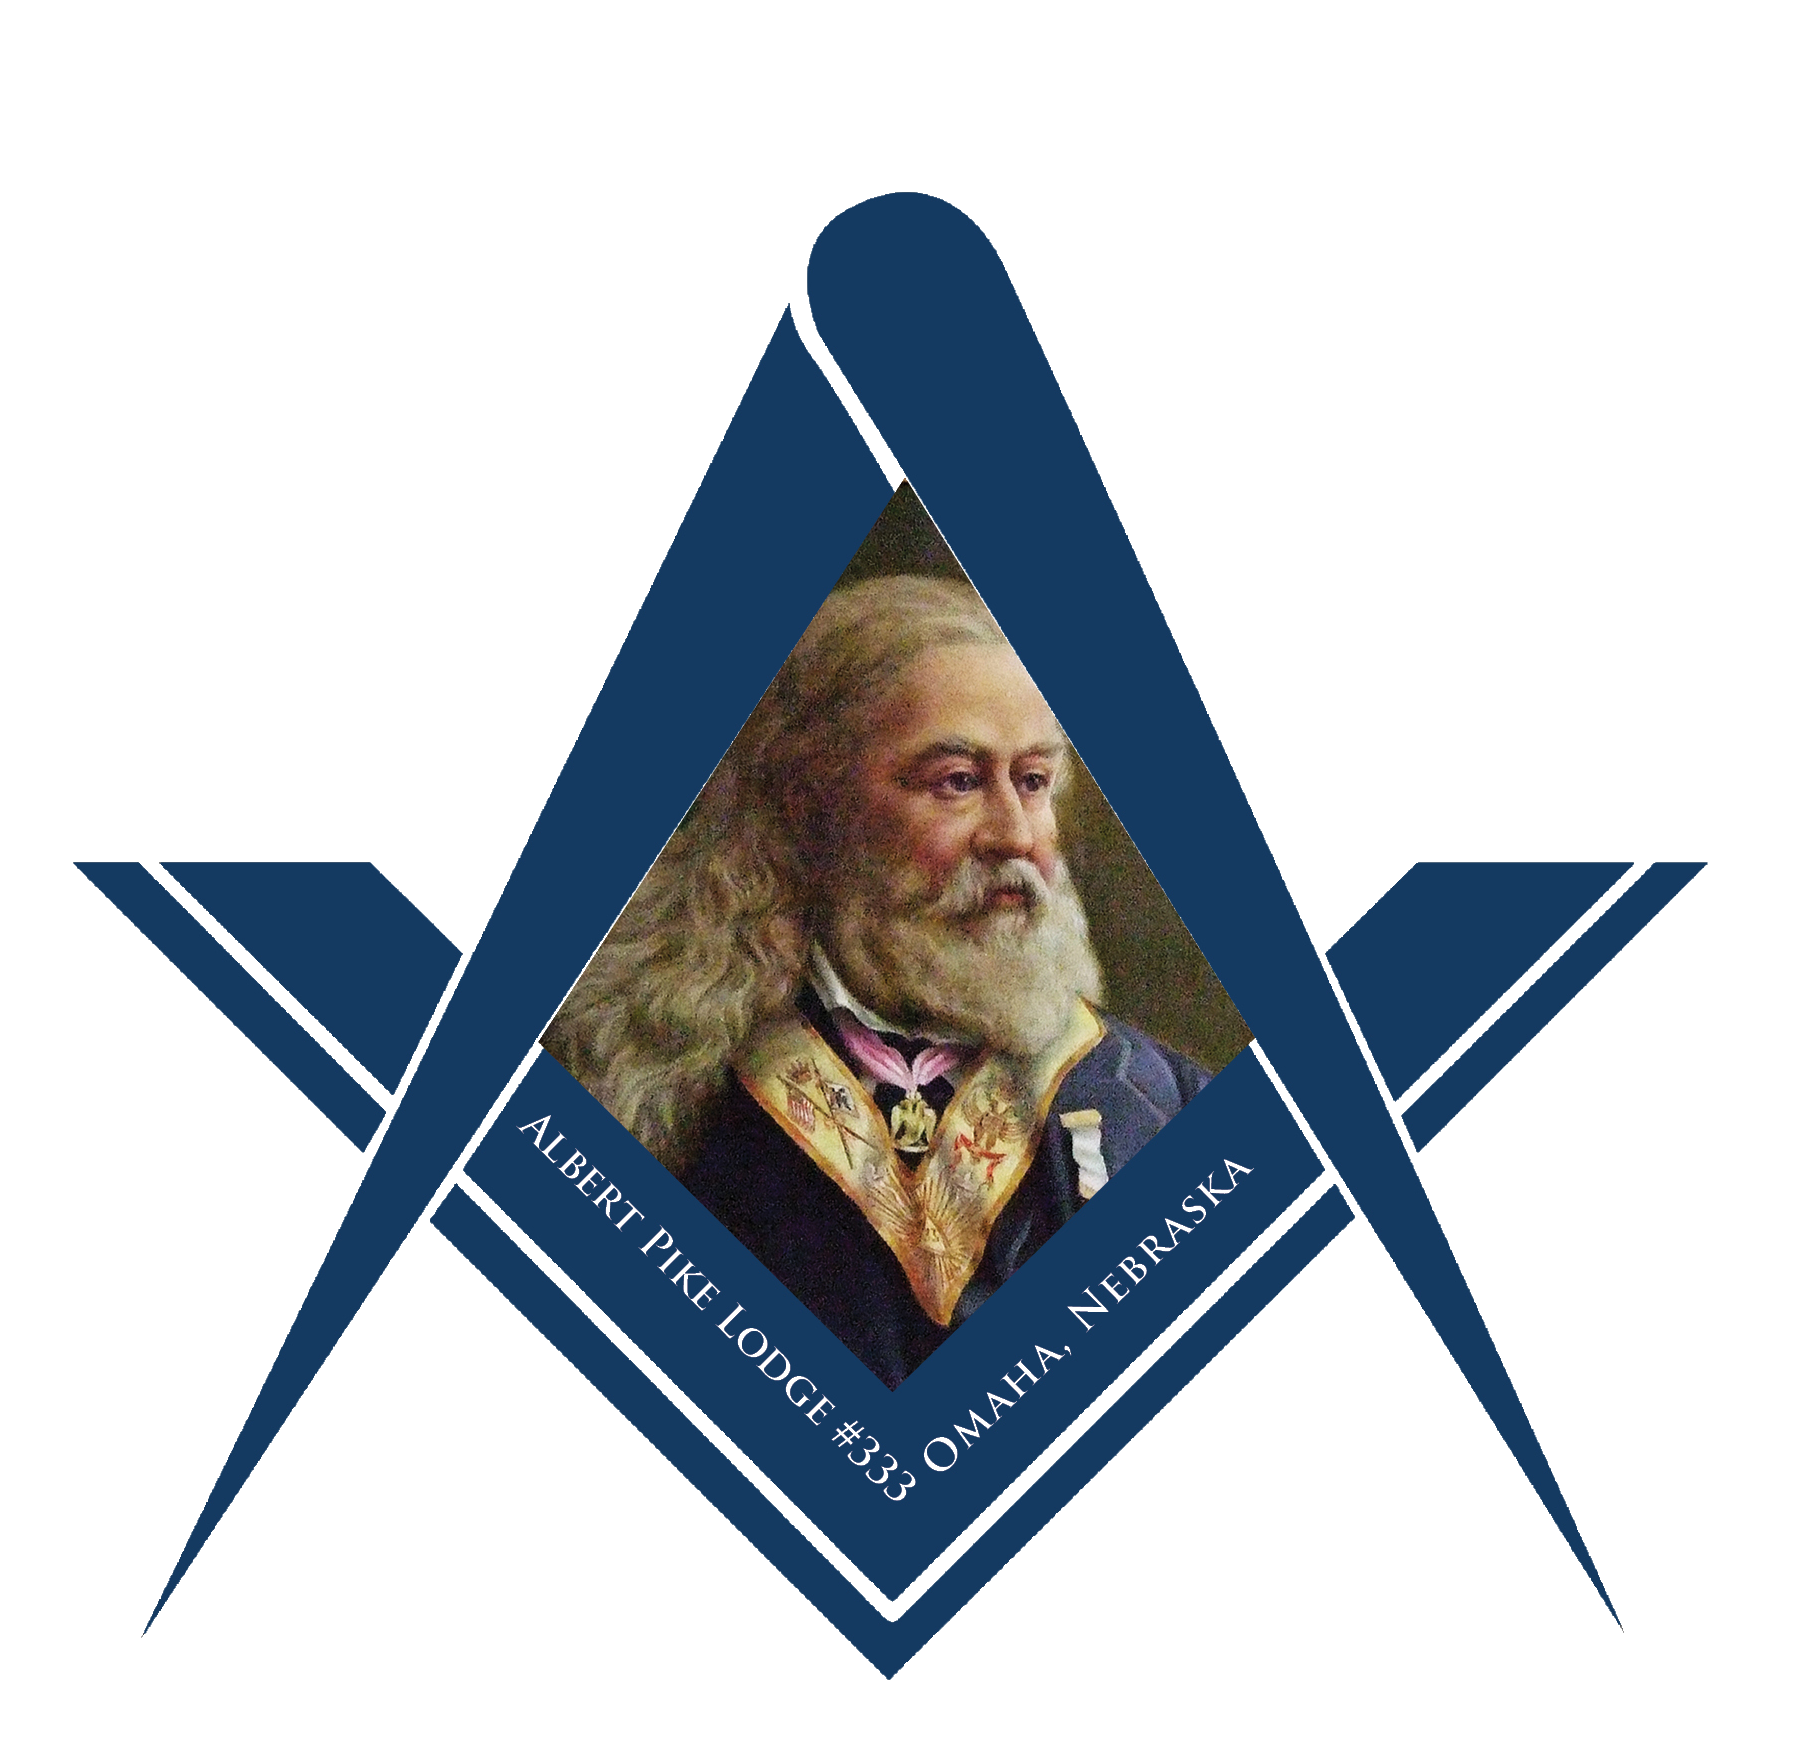 Pike Lodge 333 logo.png